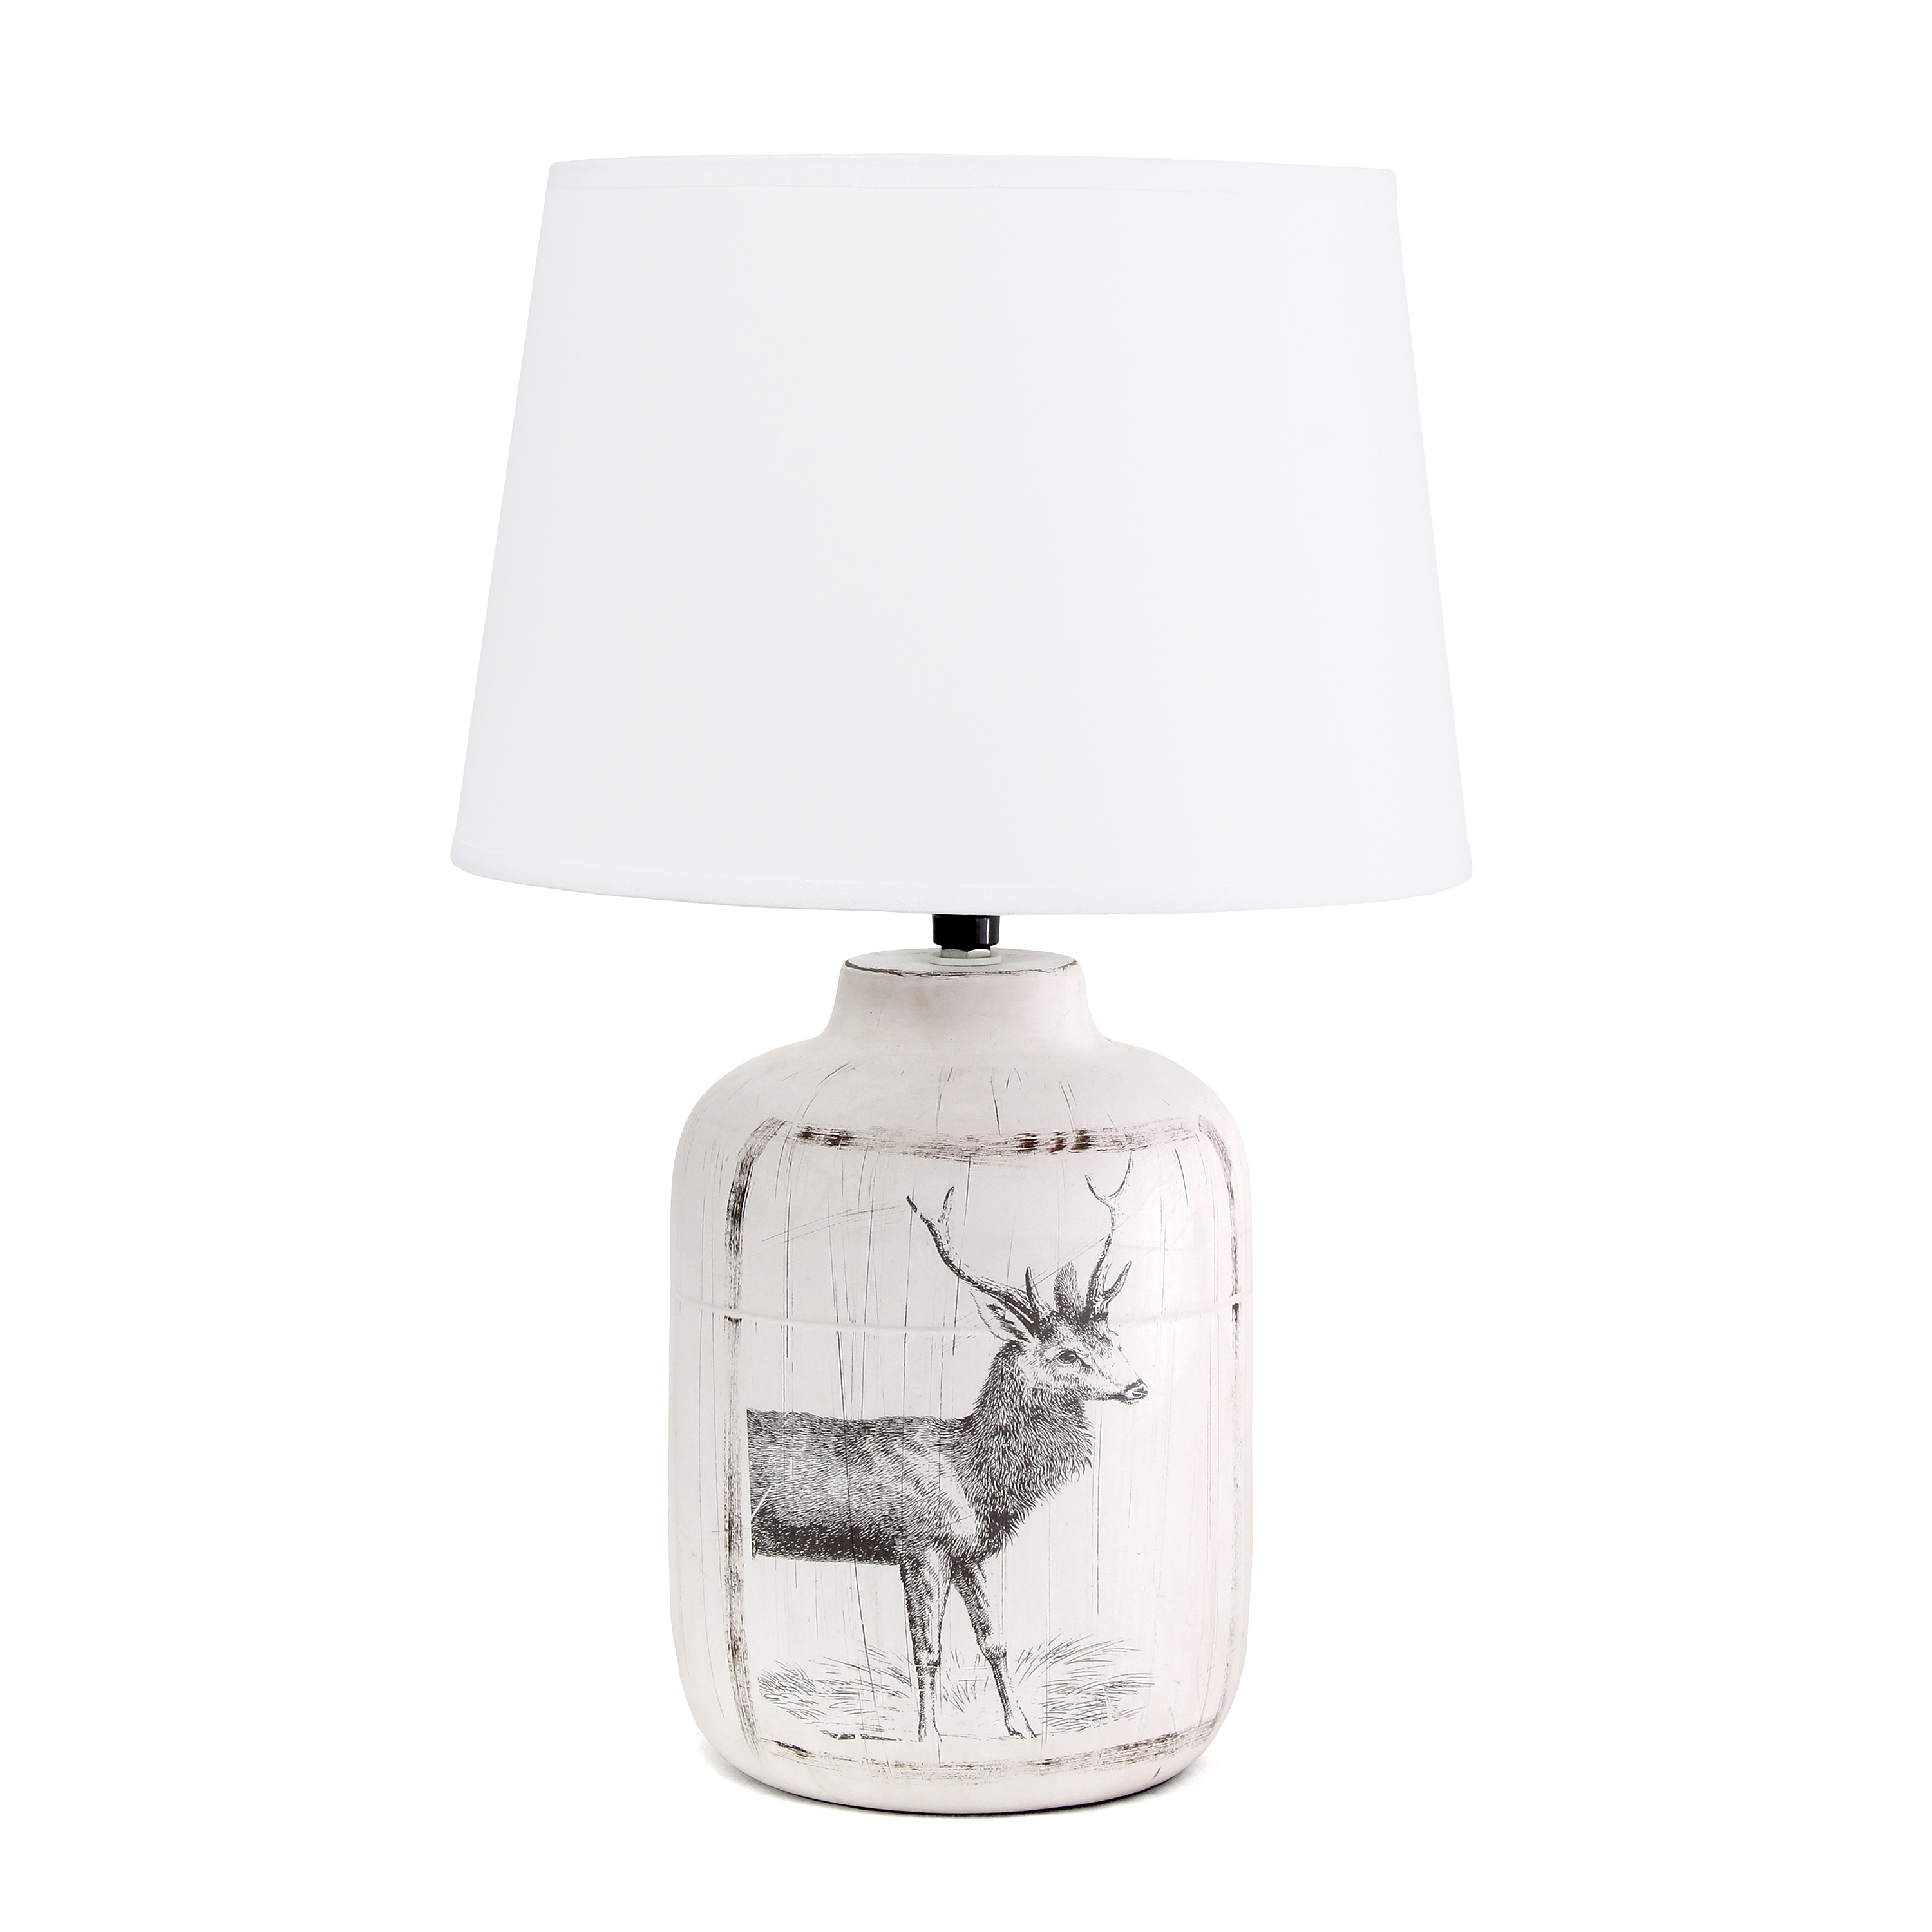 Simple Designs Rustic Deer Buck Nature Printed Ceramic Farmhouse Accent Table Lamp with Fabric Shade